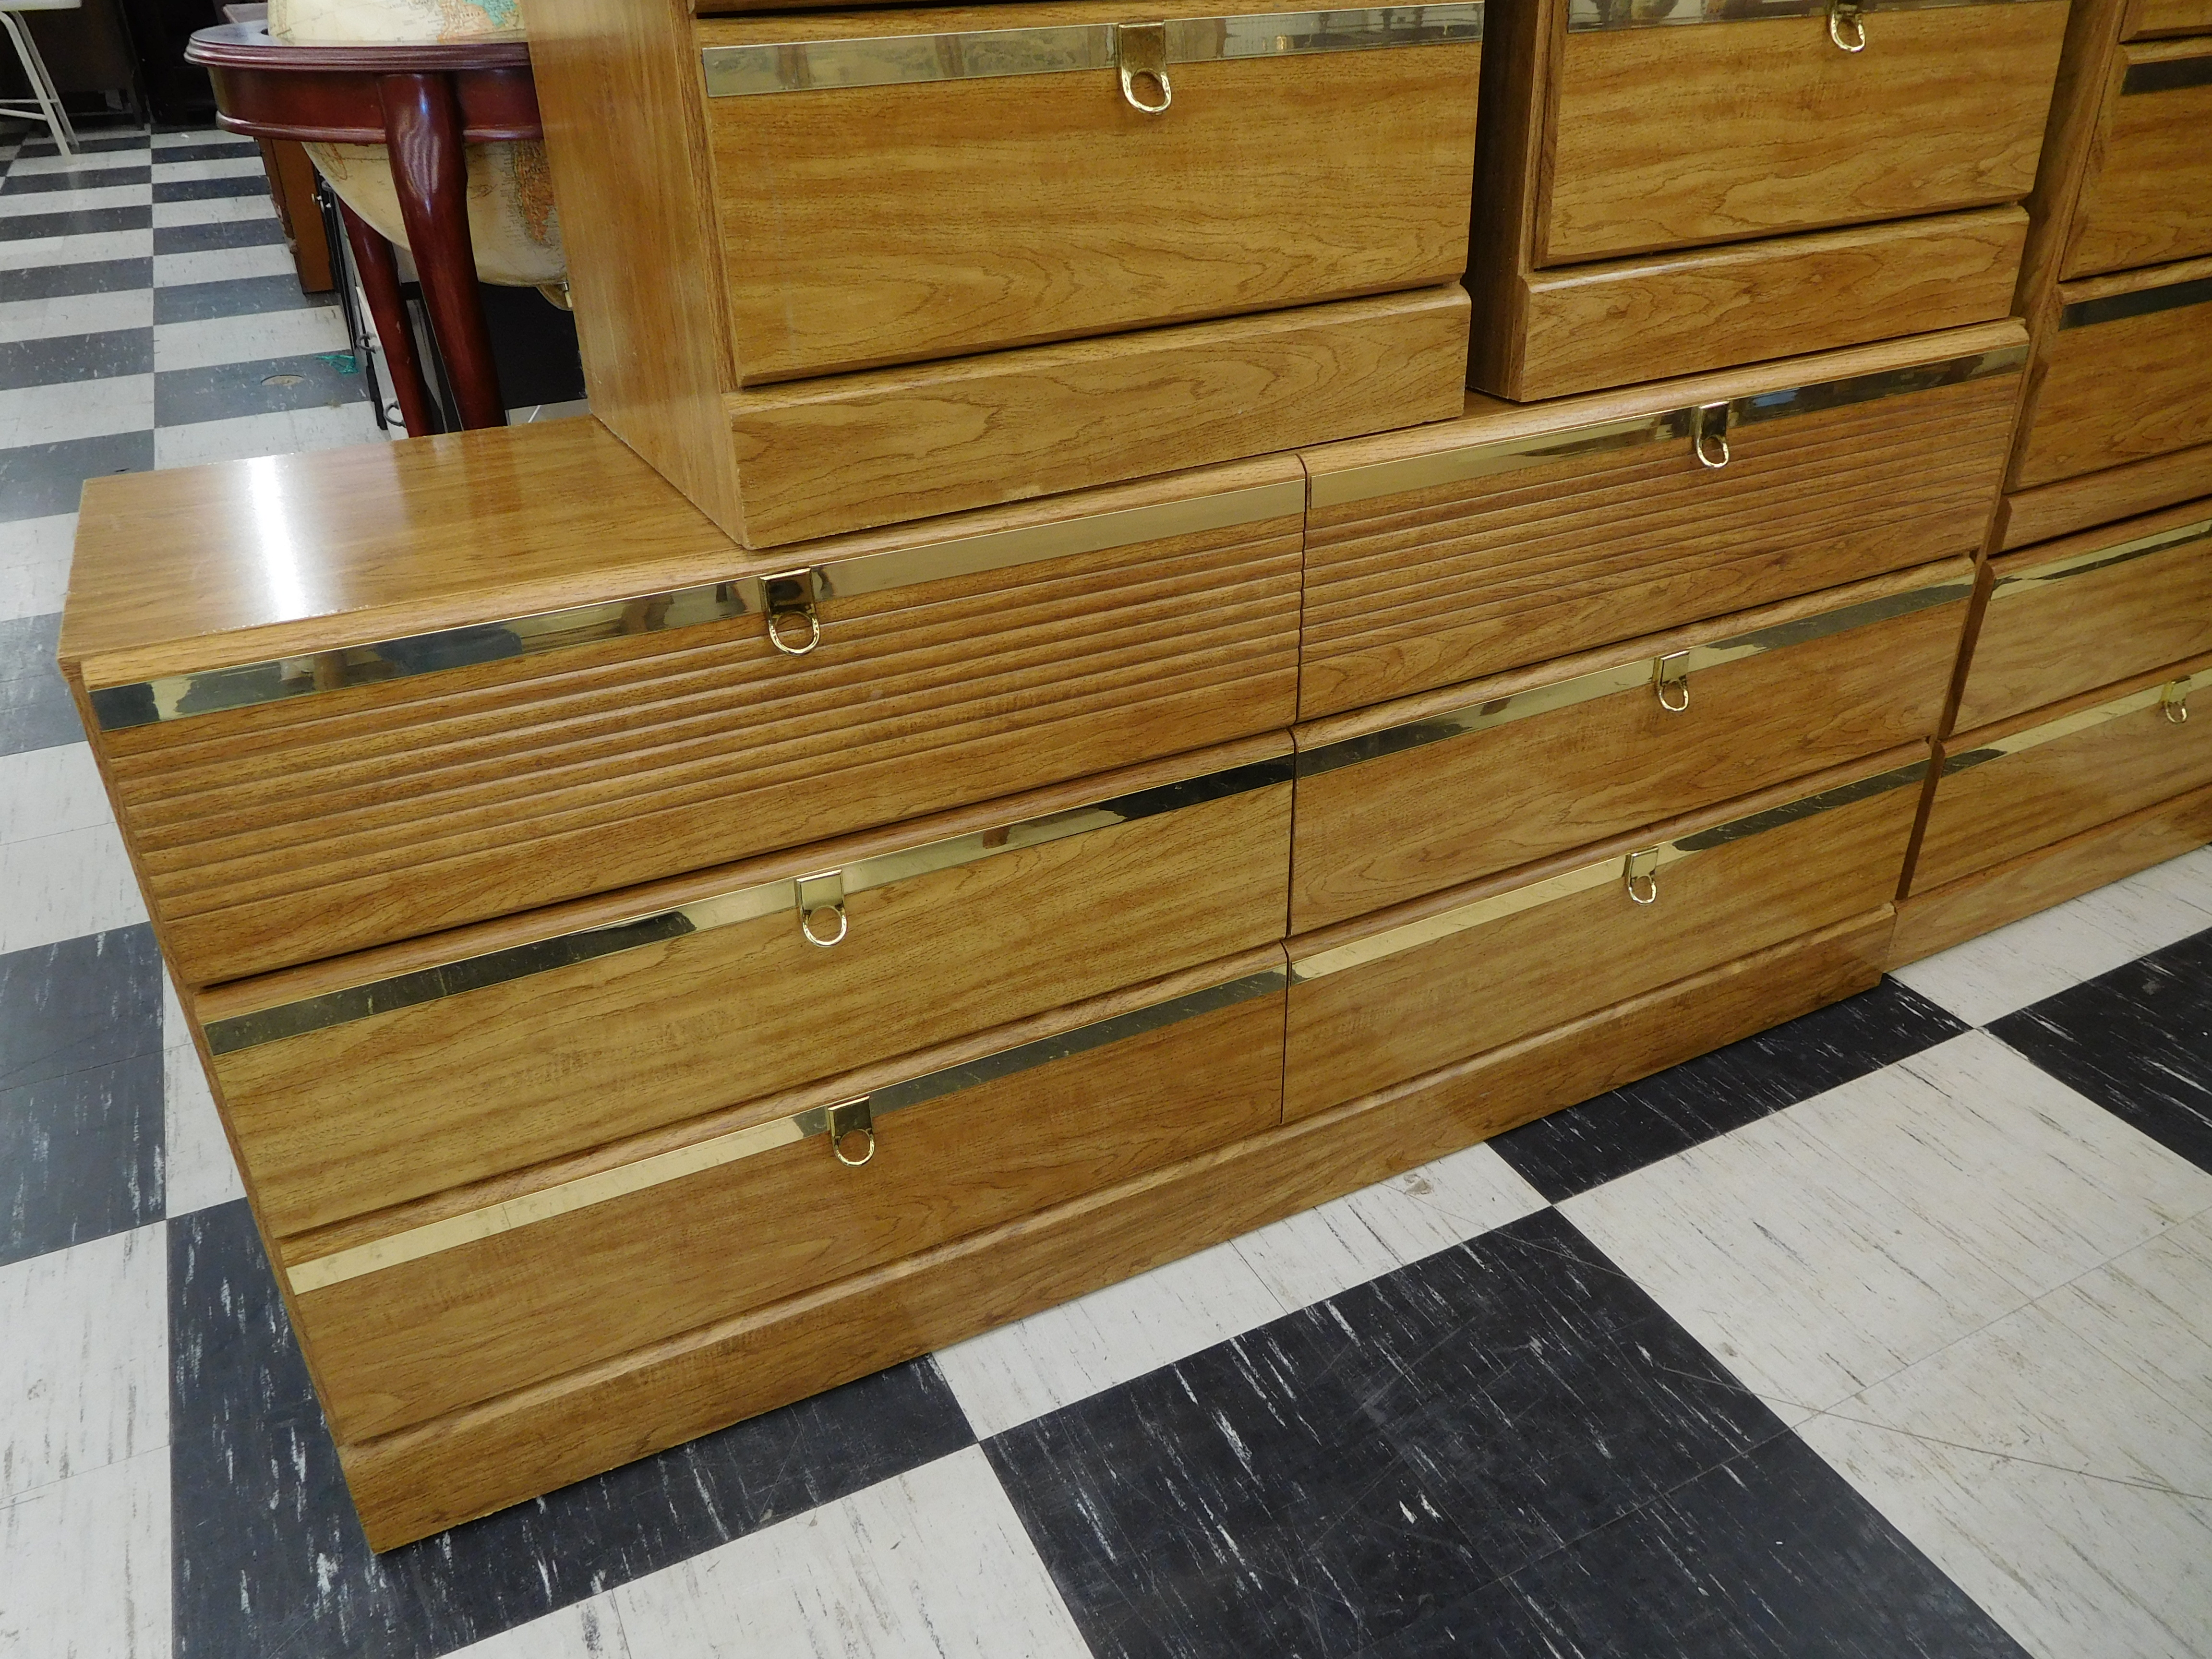 Modern Dresser with Brass Trimmed Drawers and Pulls